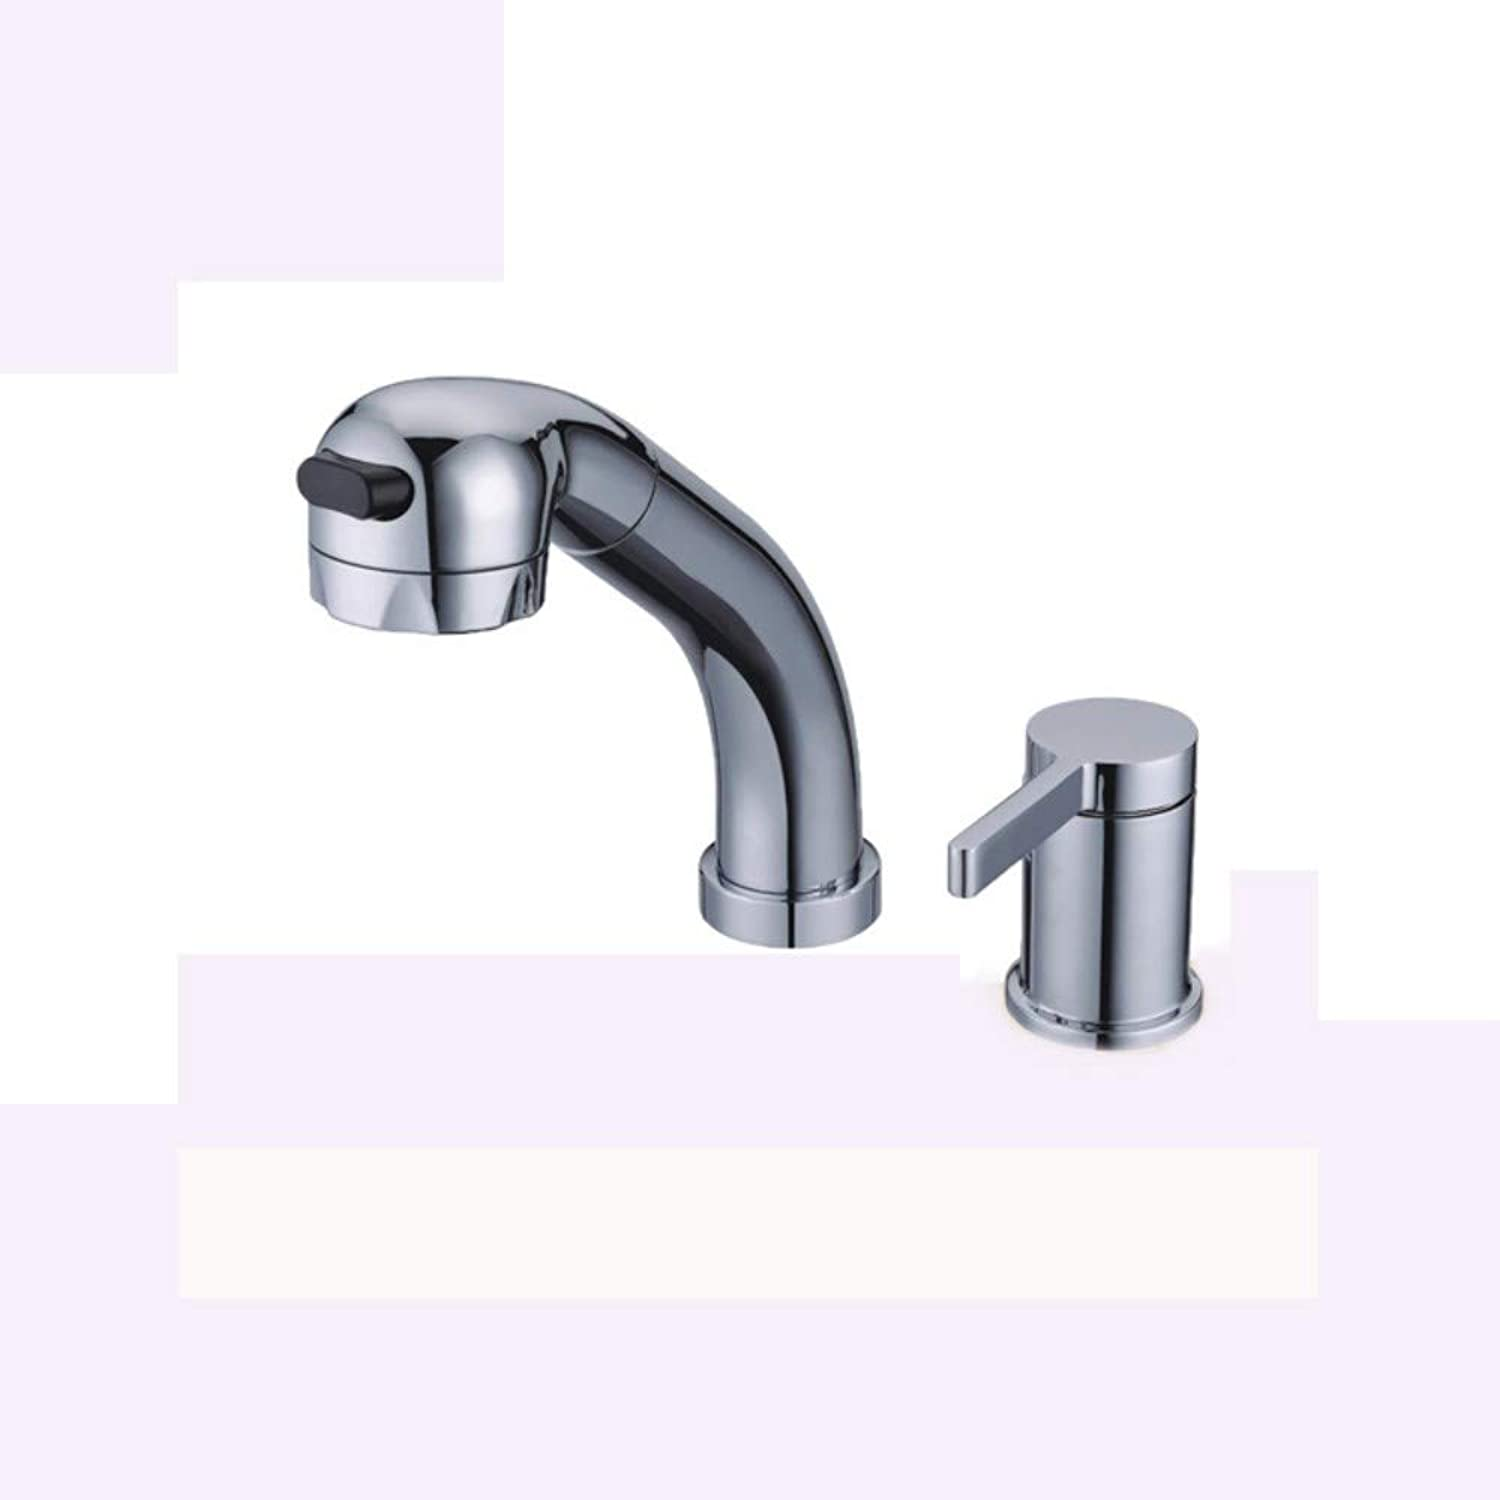 Faucet Plumbing hot and Cold Water Pull-Out Kitchen Faucet